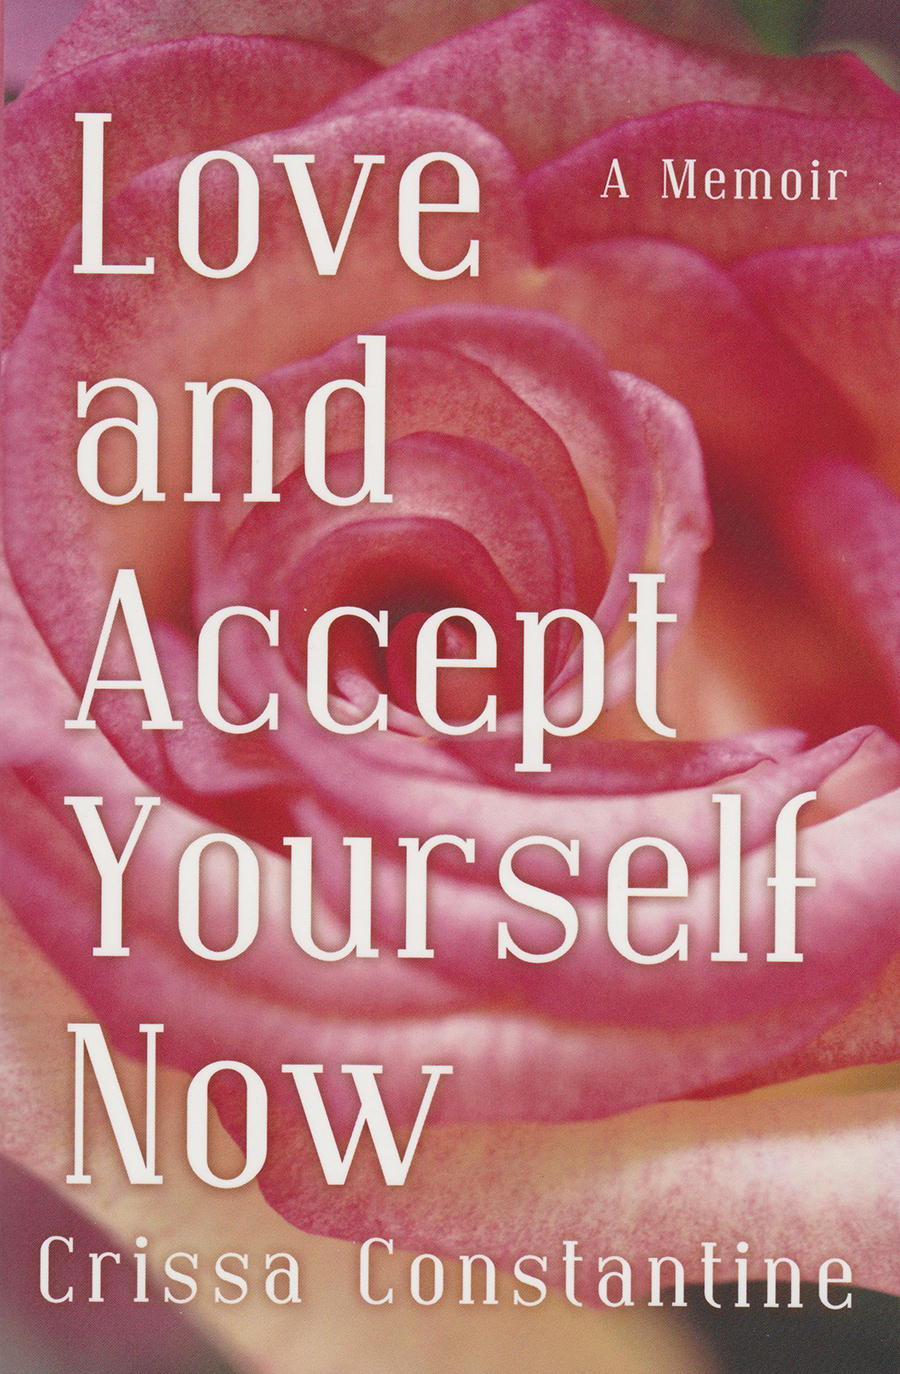 Love and accept yourself now - Front